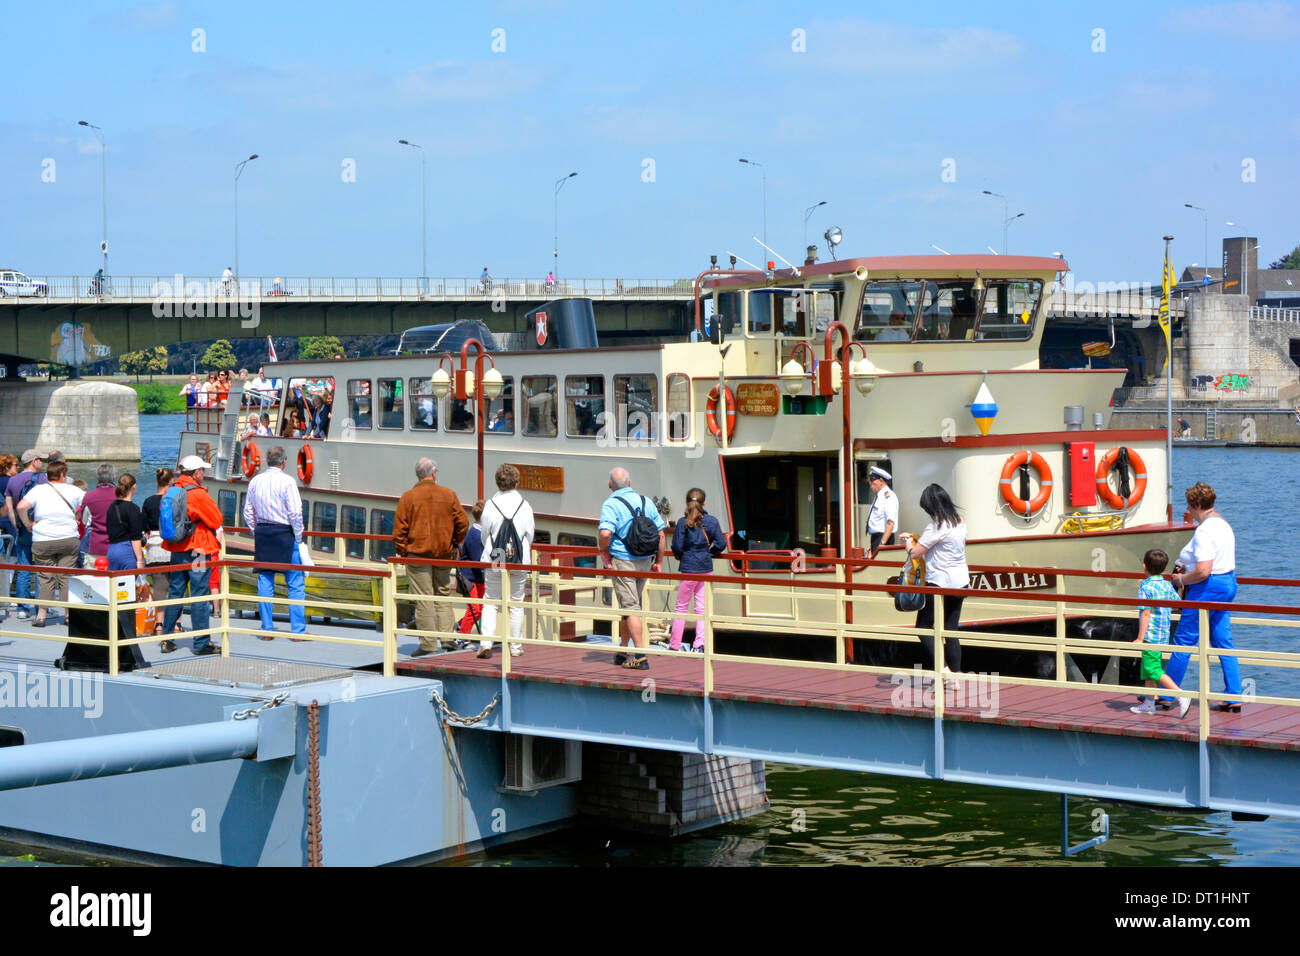 River Meuse tour boat returning to Maastricht with next group of passengers waiting to board - Stock Image